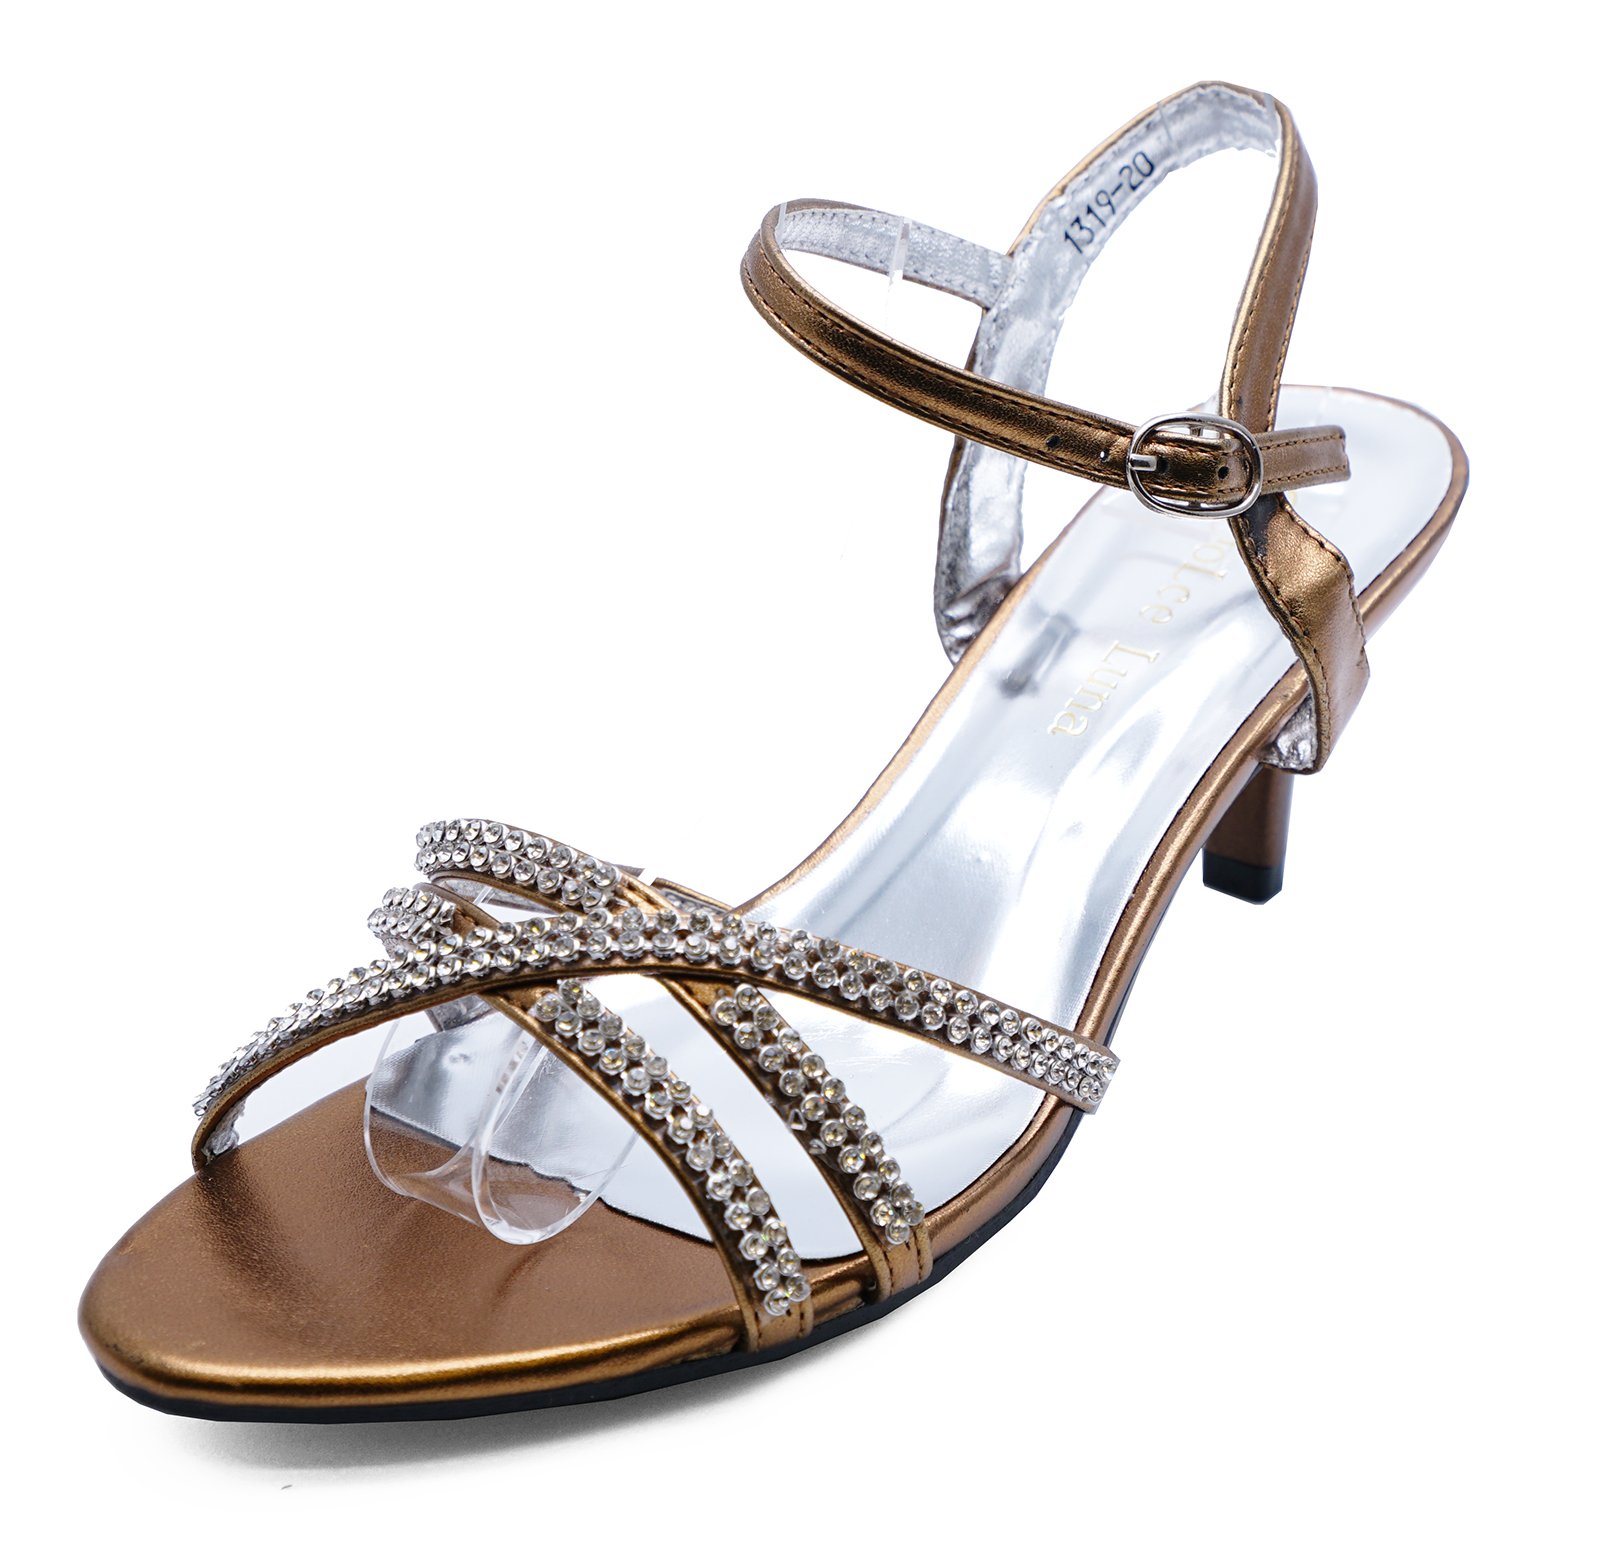 faa96f448 Sentinel LADIES BRONZE STRAPPY EVENING DIAMANTE SANDALS BRIDESMAID PARTY  SHOES SIZE 3-8